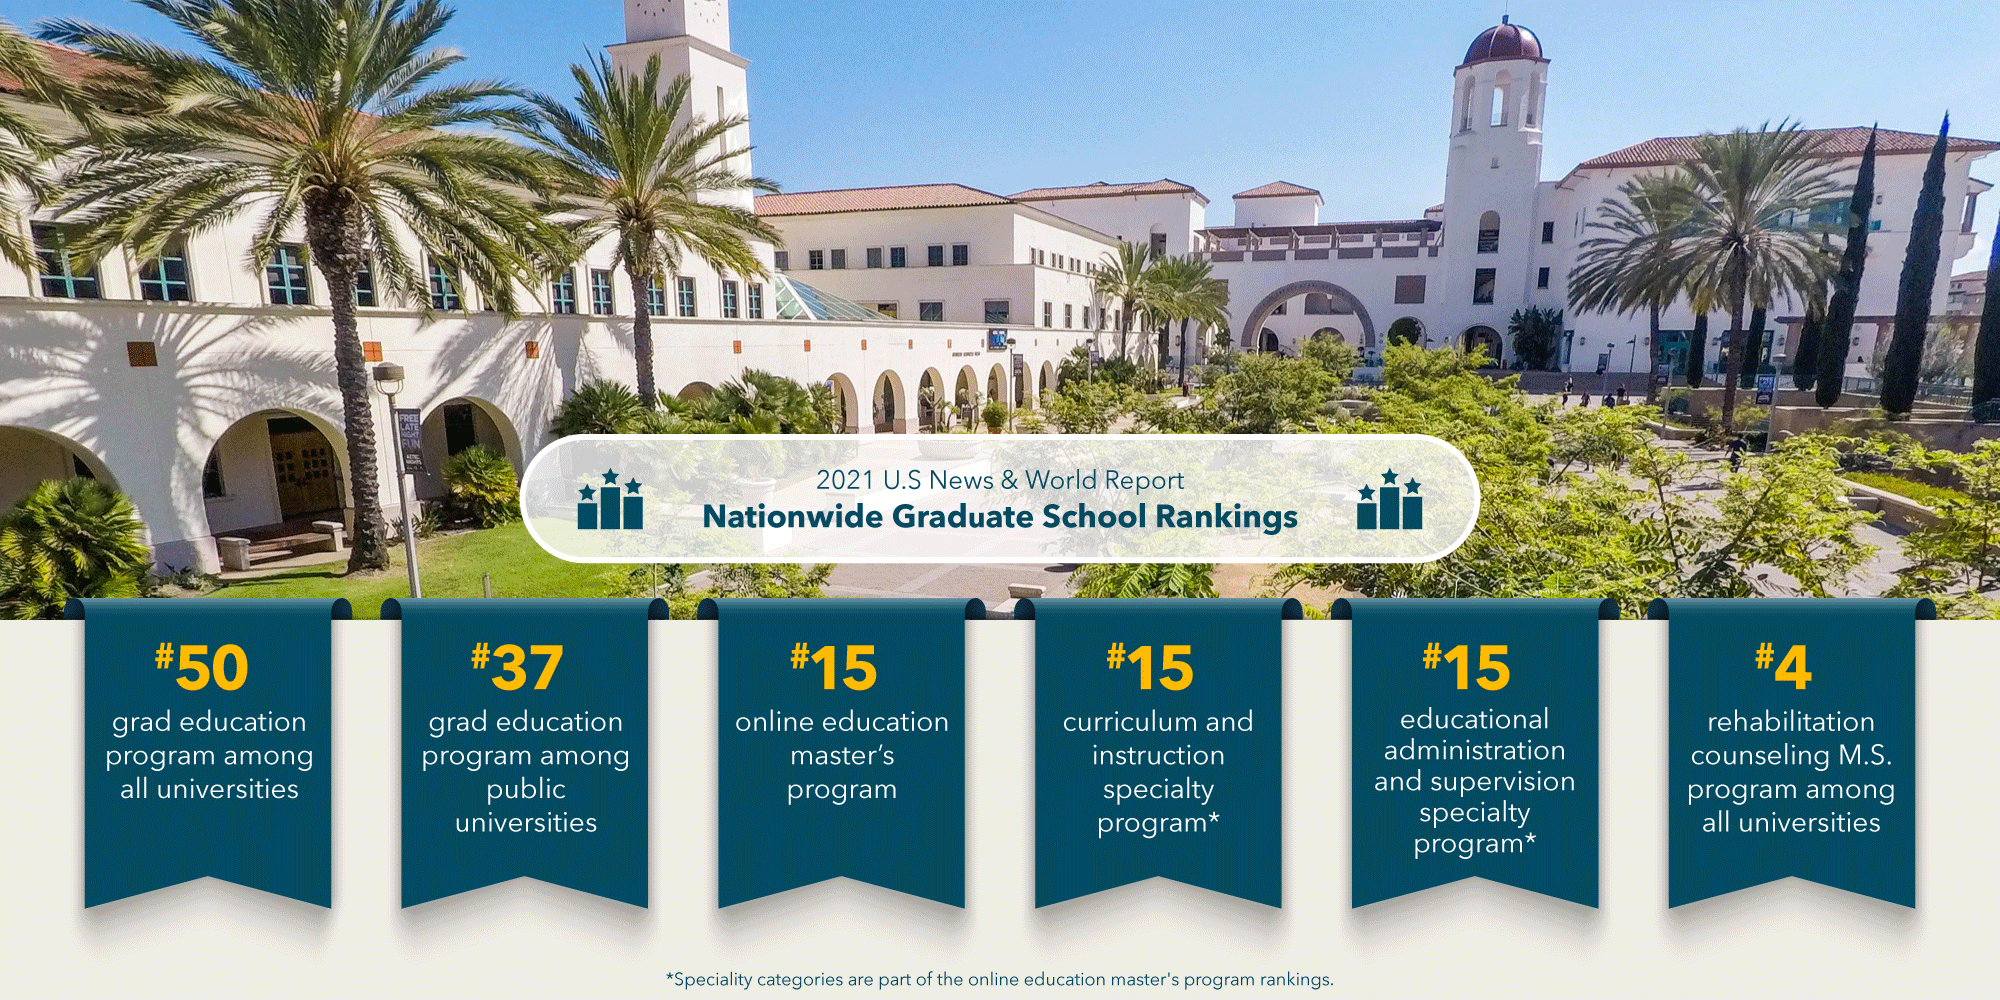 U.S. News & World Report Best Graduate Schools Rankings. #50 graduate education program among all universities nationwide; #37 graduate education program among public universities nationwide; #15 online education master's in the nation, curriculum instruction specialty program, and educational administration and supervision specialty program; and #4 rehabilitation counseling M.S. program among all universities nationwide. Speciality categories are part of the online education master's program rankings.